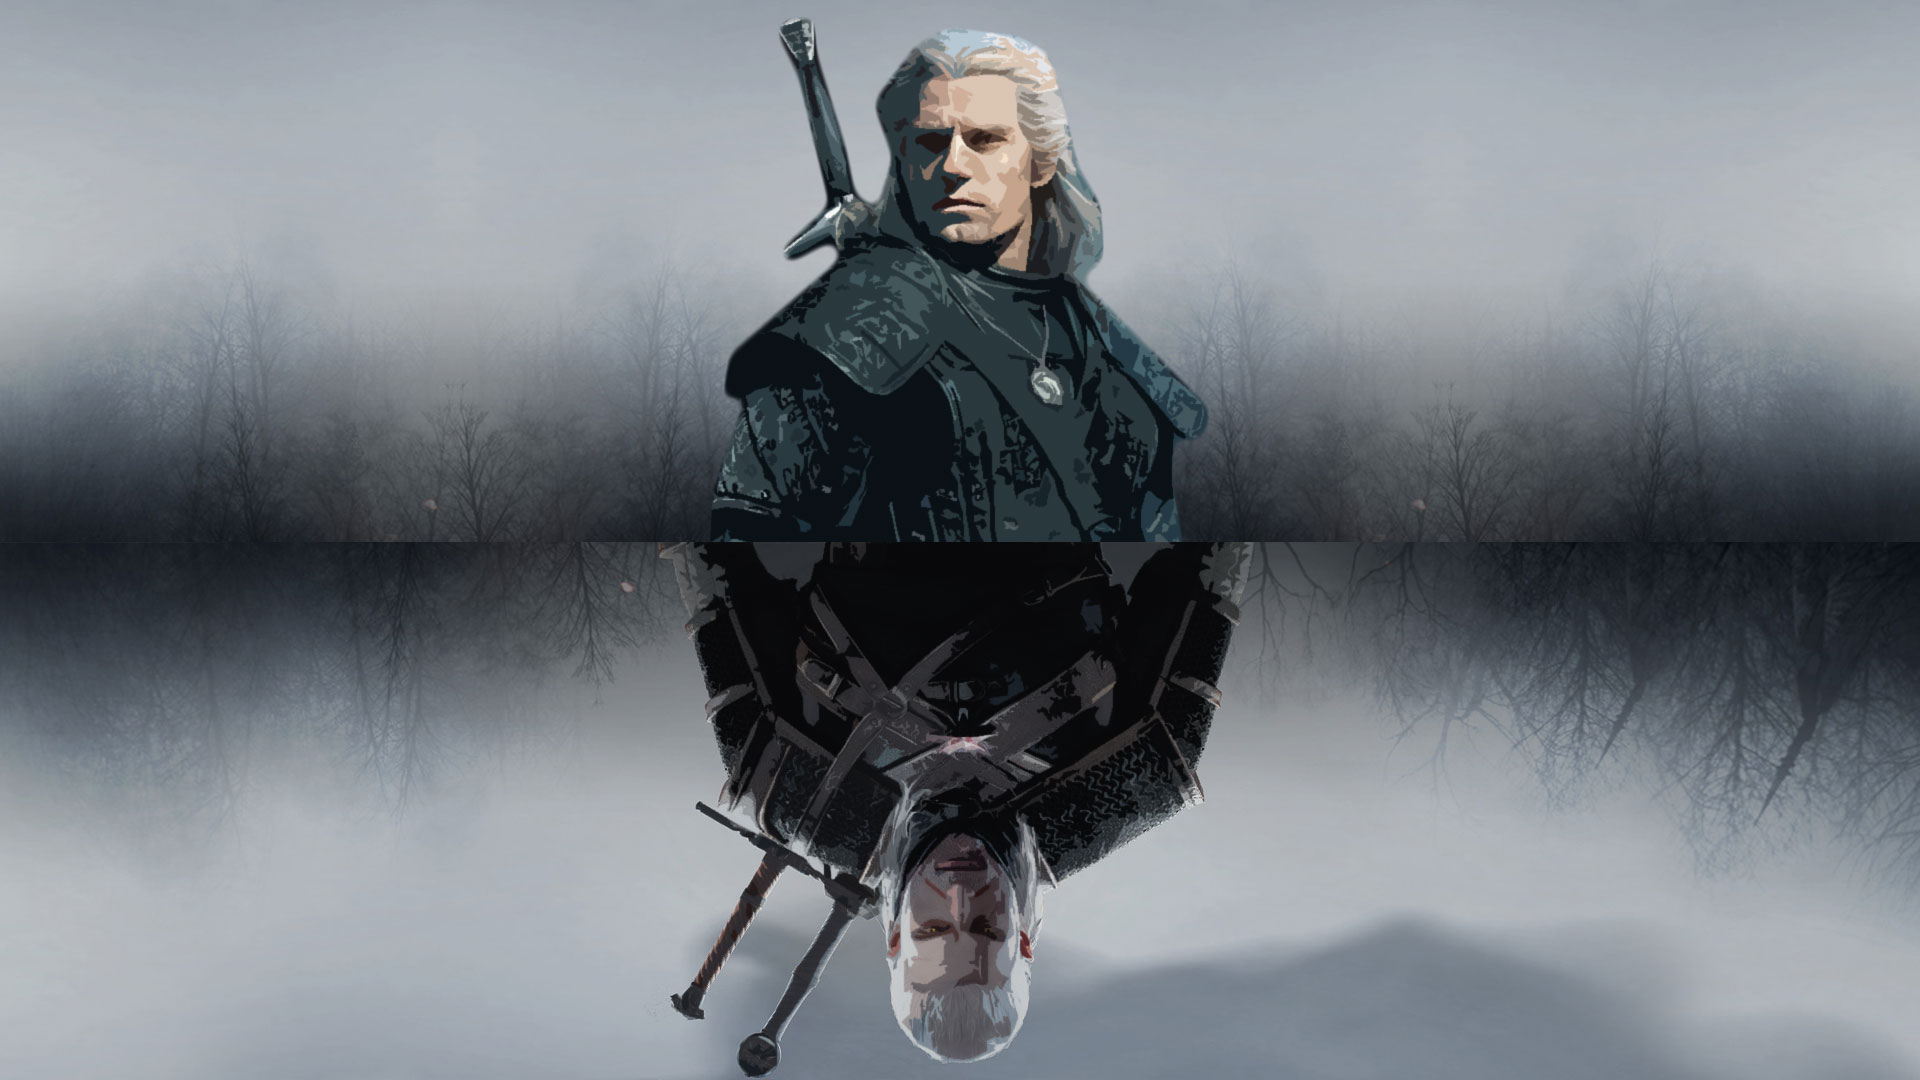 The Witcher on Netflix prompts hundreds of thousands of fans to return to The Witcher 3: Wild Hunt